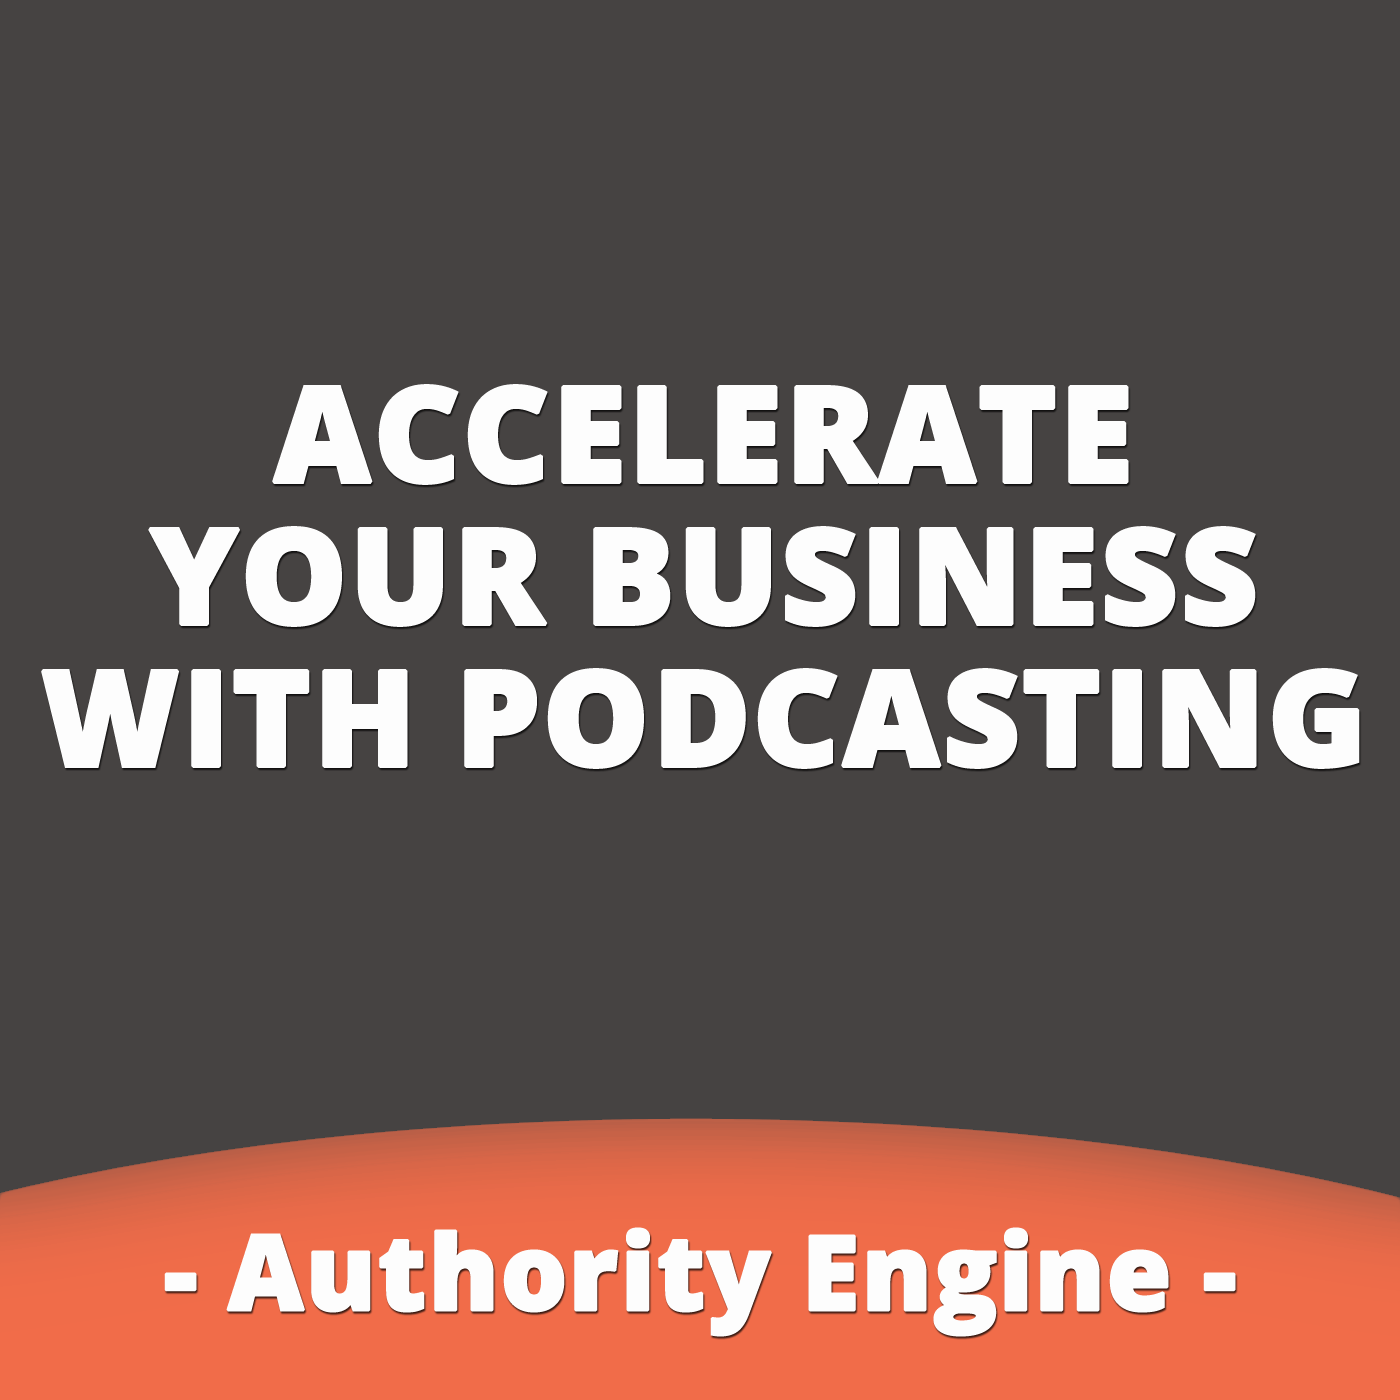 Discover If Starting A Podcast is Right For You With Andrew Youderian